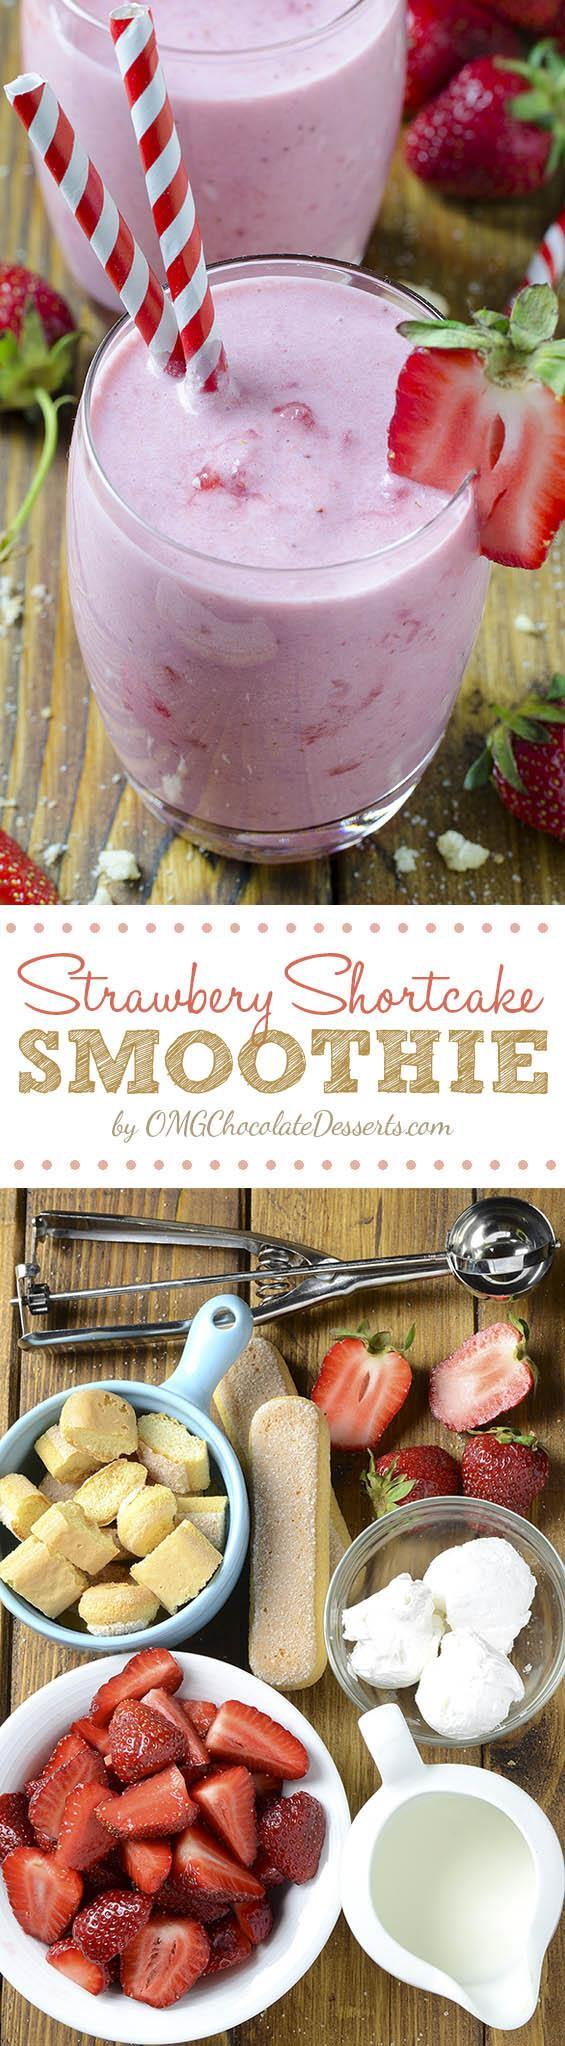 Strawberry Shortcake Smoothie is the best breakfast for busy mornings. Just throw 4 simple ingredients in a blender and ending up with a delicious and healthy meal.